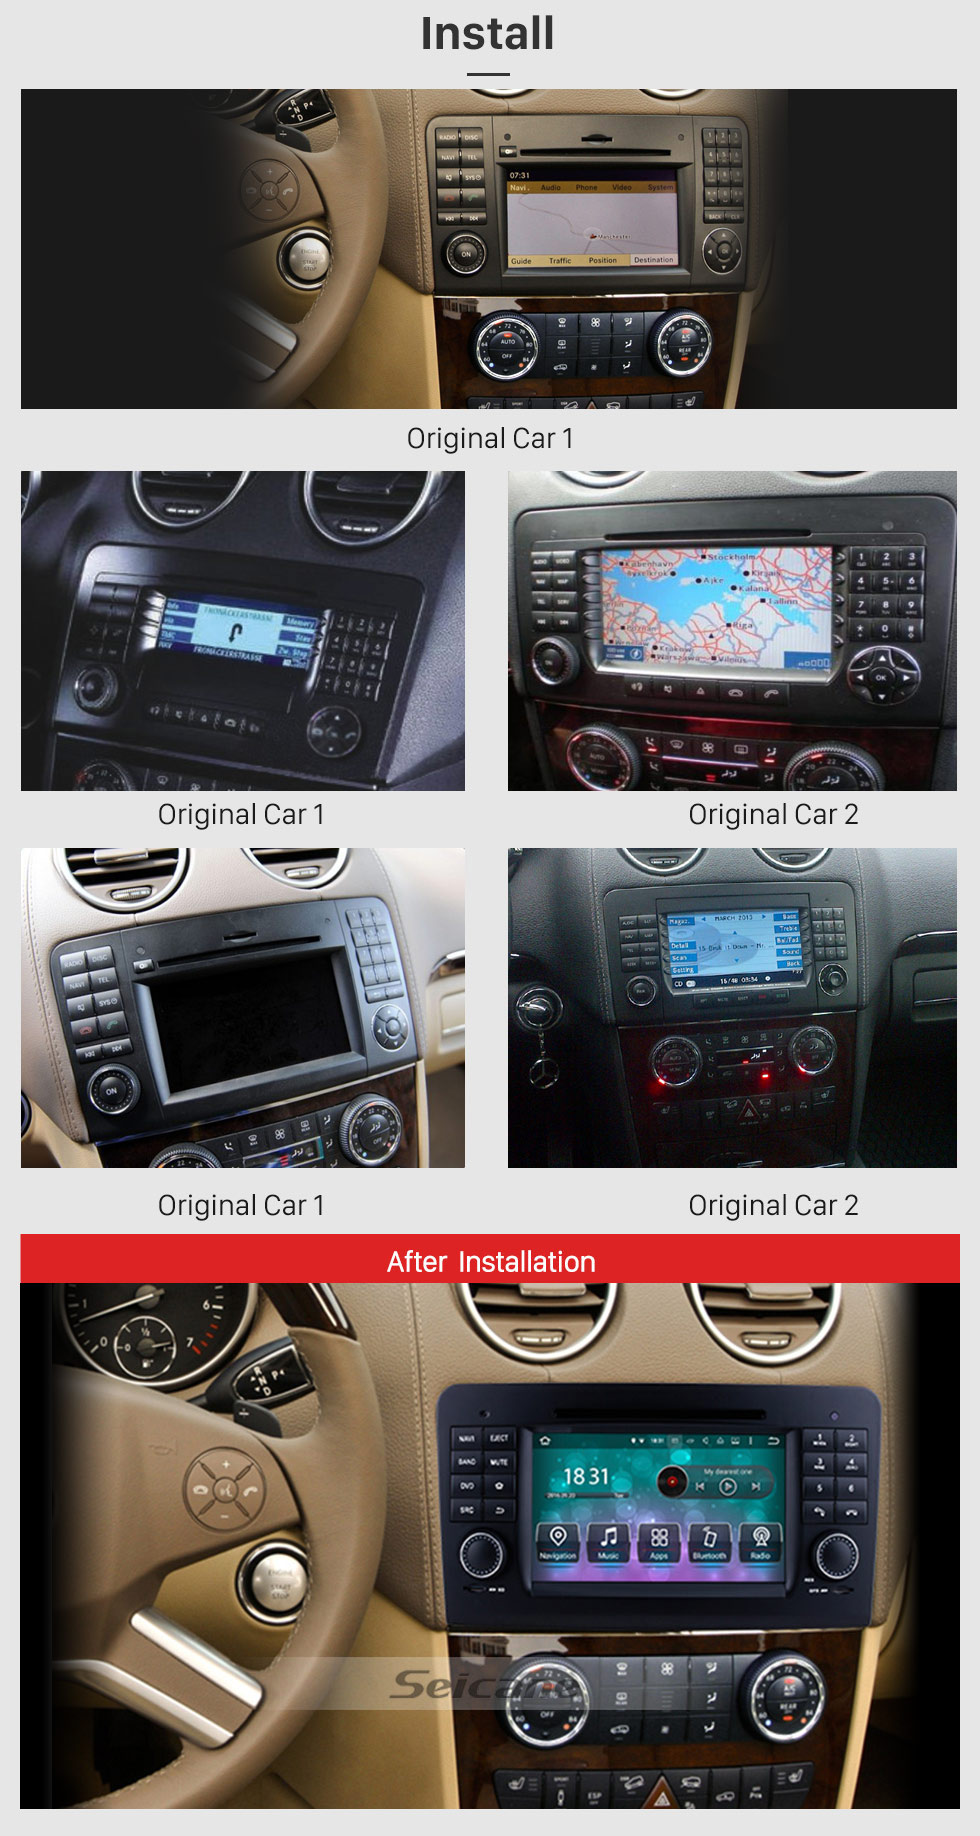 Seicane Android 8.0 GPS Navigation system for 2005-2012 Mercedes-Benz ML CLASS W164 ML300 ML350 ML450 ML500 with DVD Player Touch Screen Radio Bluetooth WiFi TV Backup Camera steering wheel control USB SD HD 1080P Video